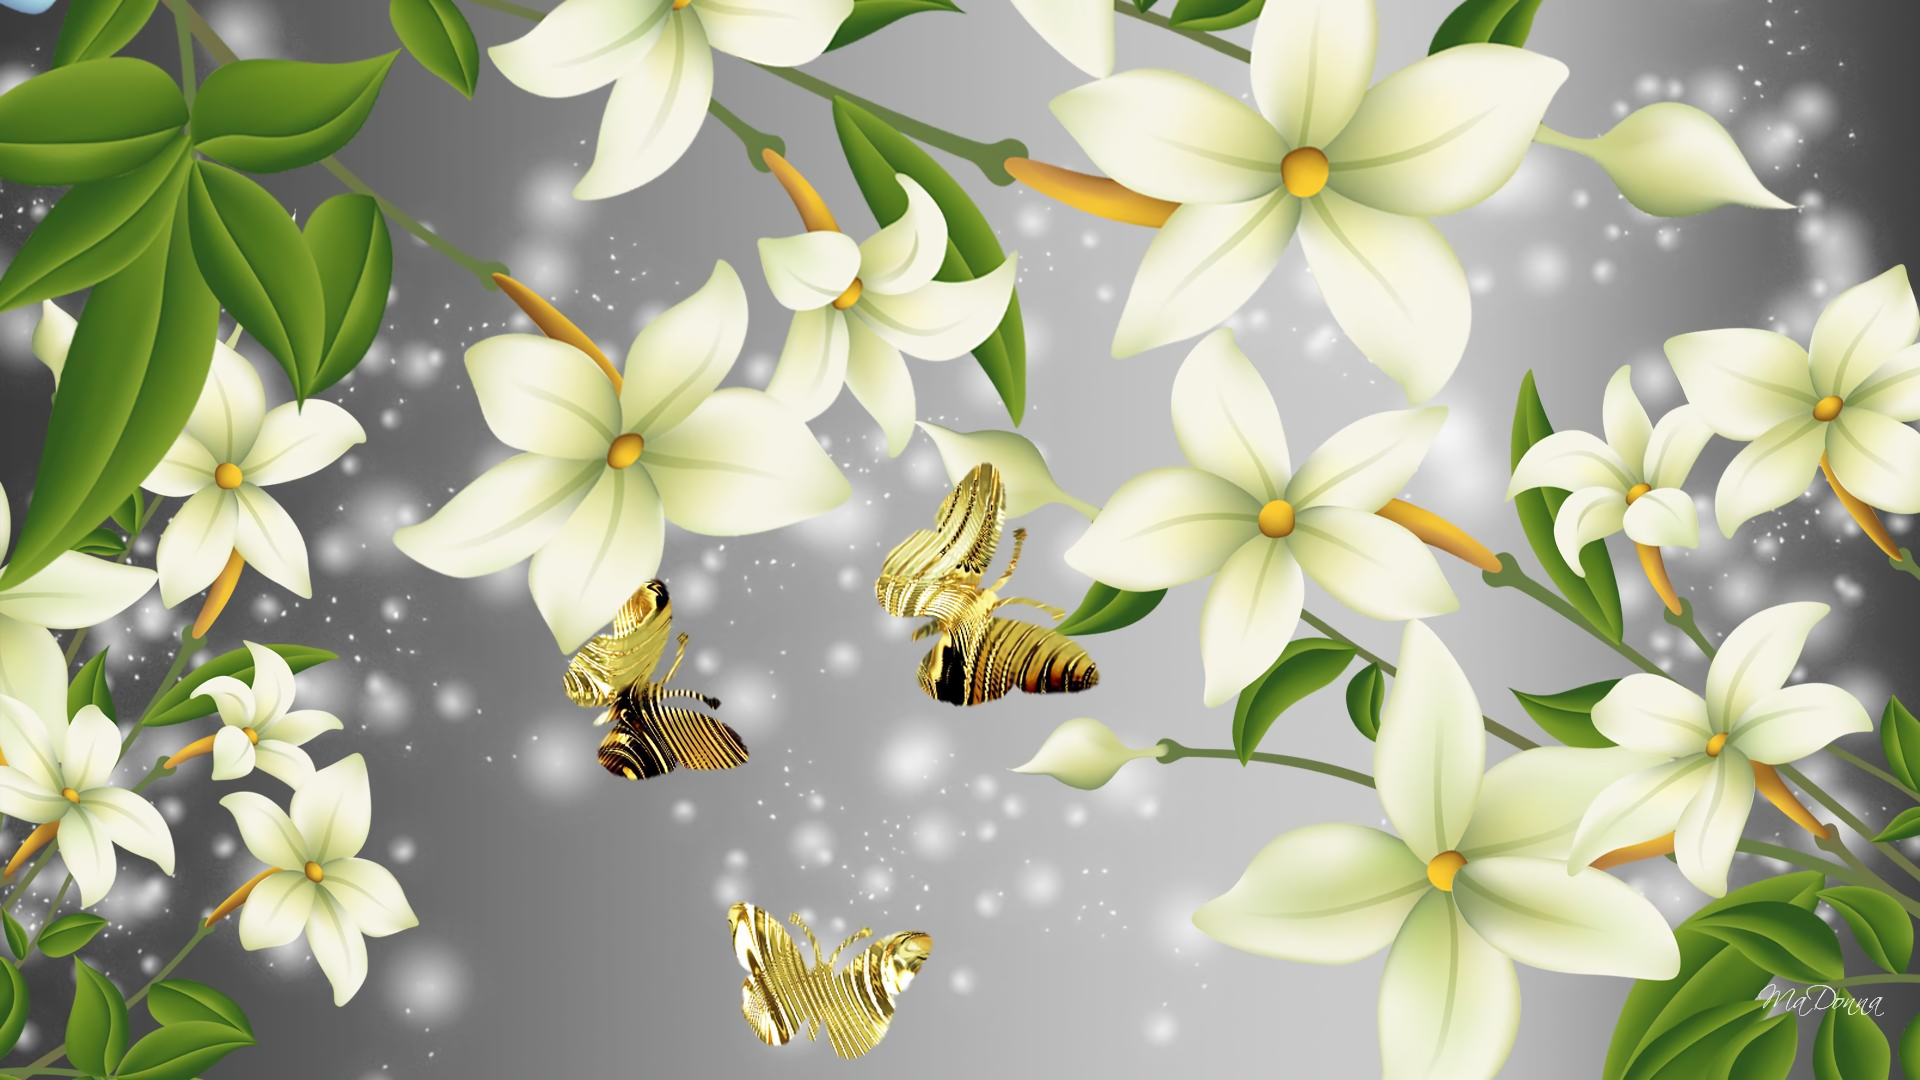 Flowers and Butterflies HD Wallpaper | Background Image ...